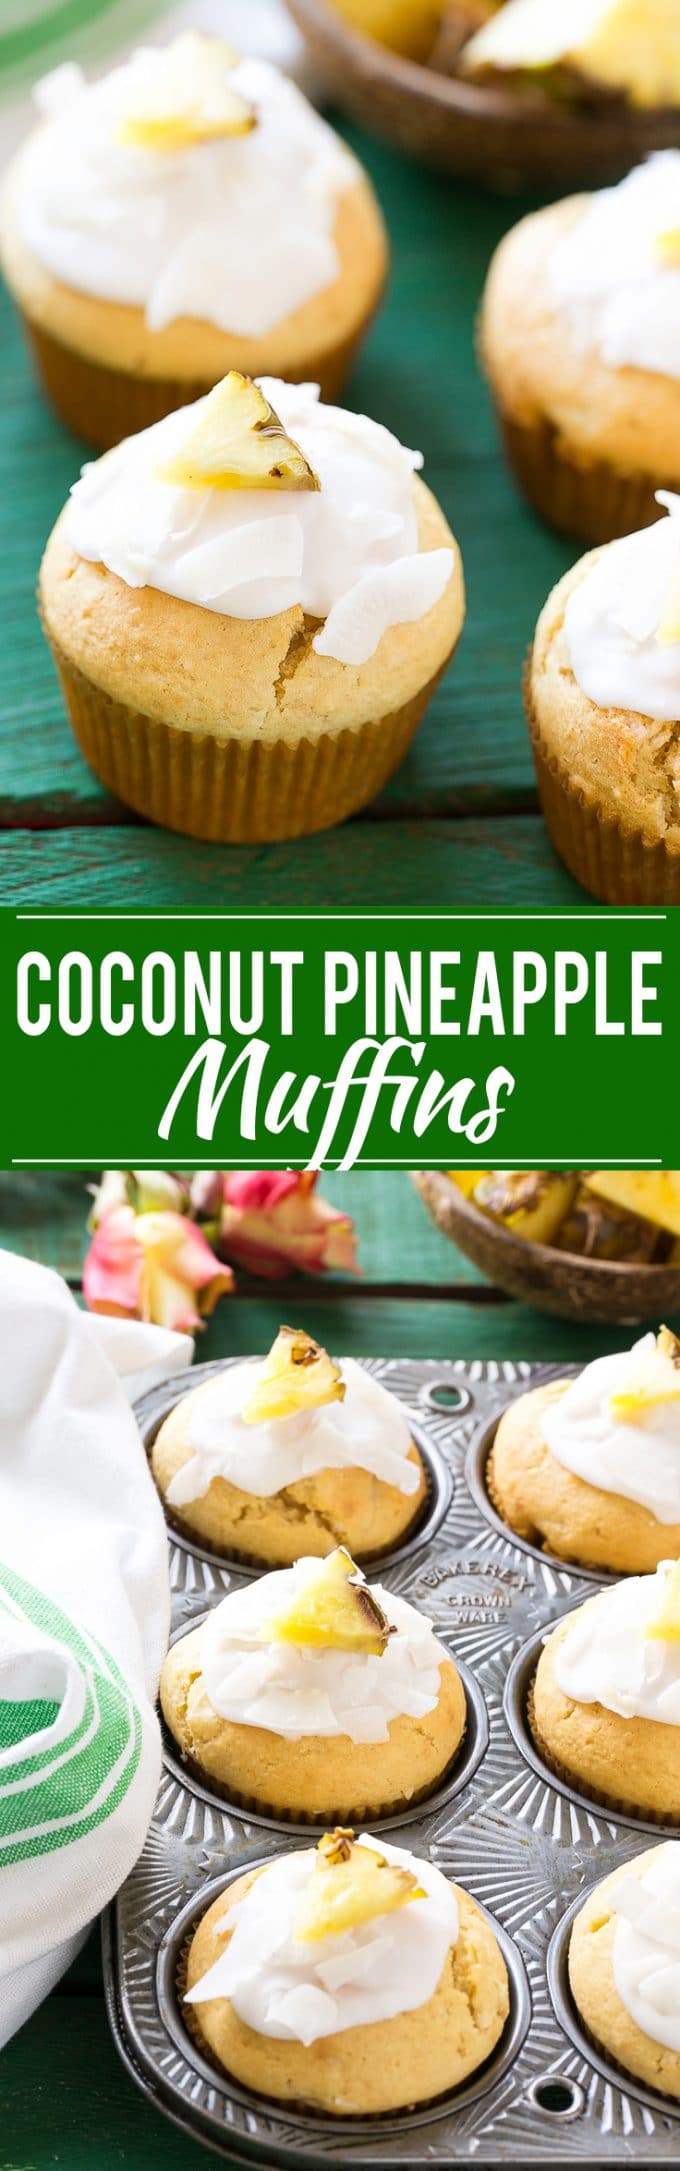 Coconut Pineapple Muffin Recipe | Coconut Pineapple Muffins | Best ...